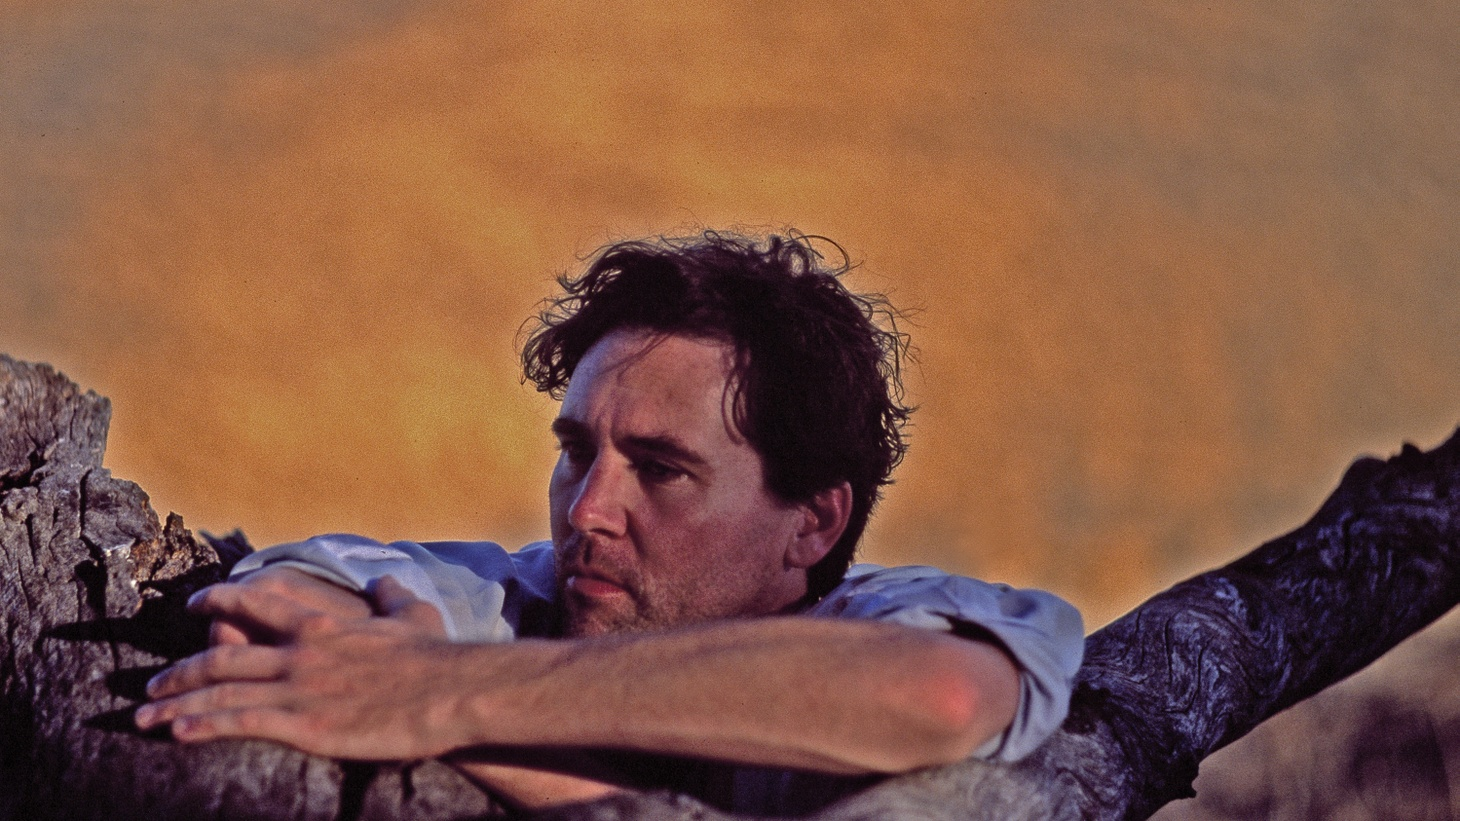 Promising a kaleidoscopic soundscape, Cass McCombs infuses a little word play and turns to the political impact of corporate greed with loads of tasty rhythms.